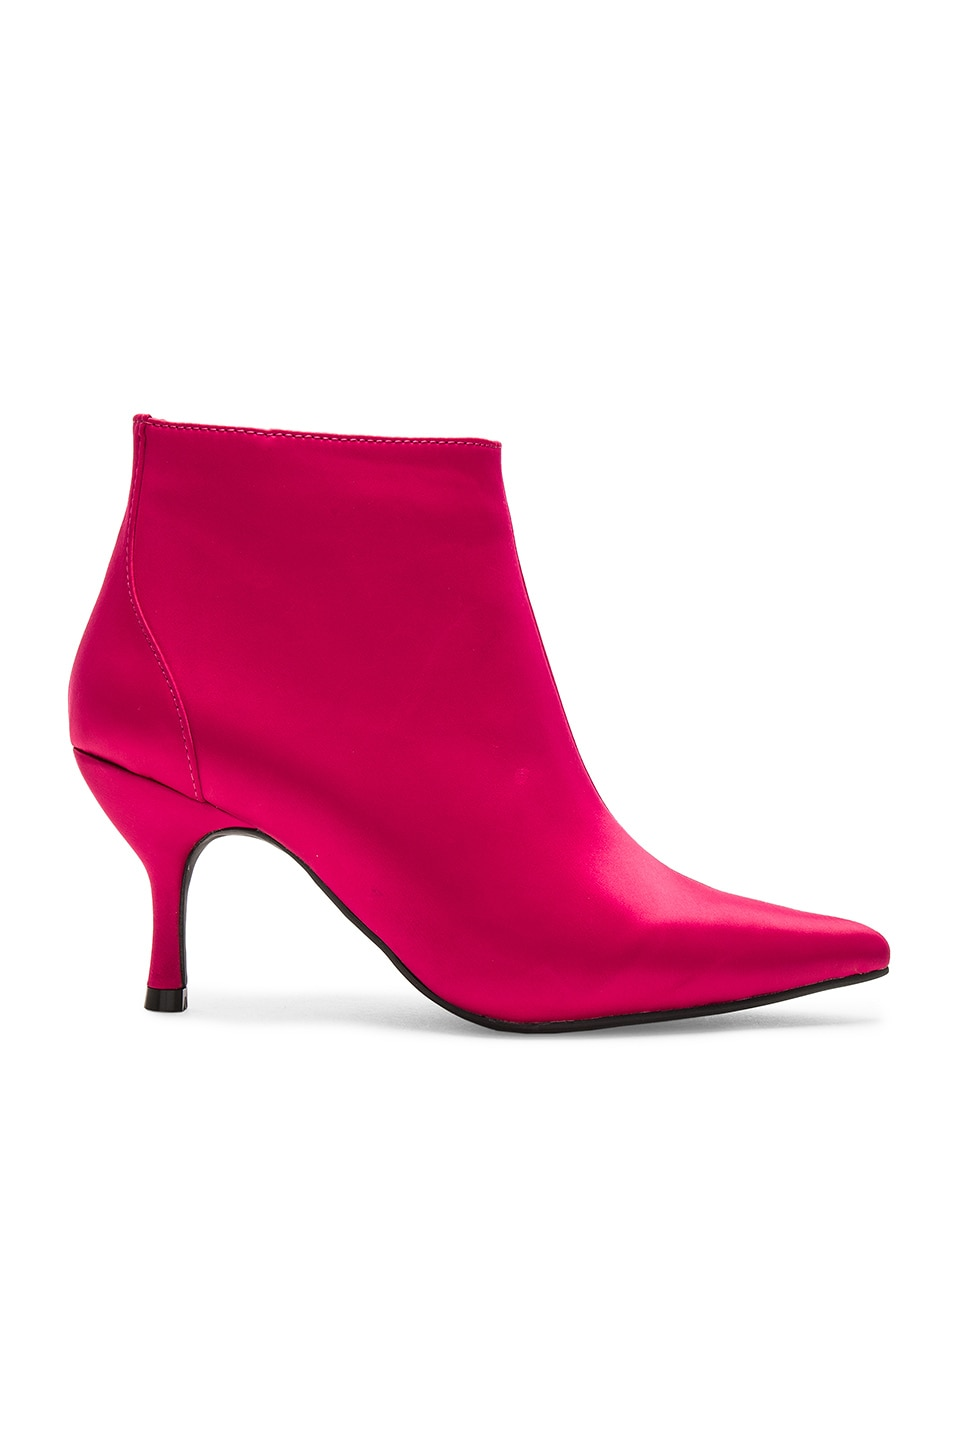 Jeffrey Campbell Twirl 2 Booties in Fuchsia Satin